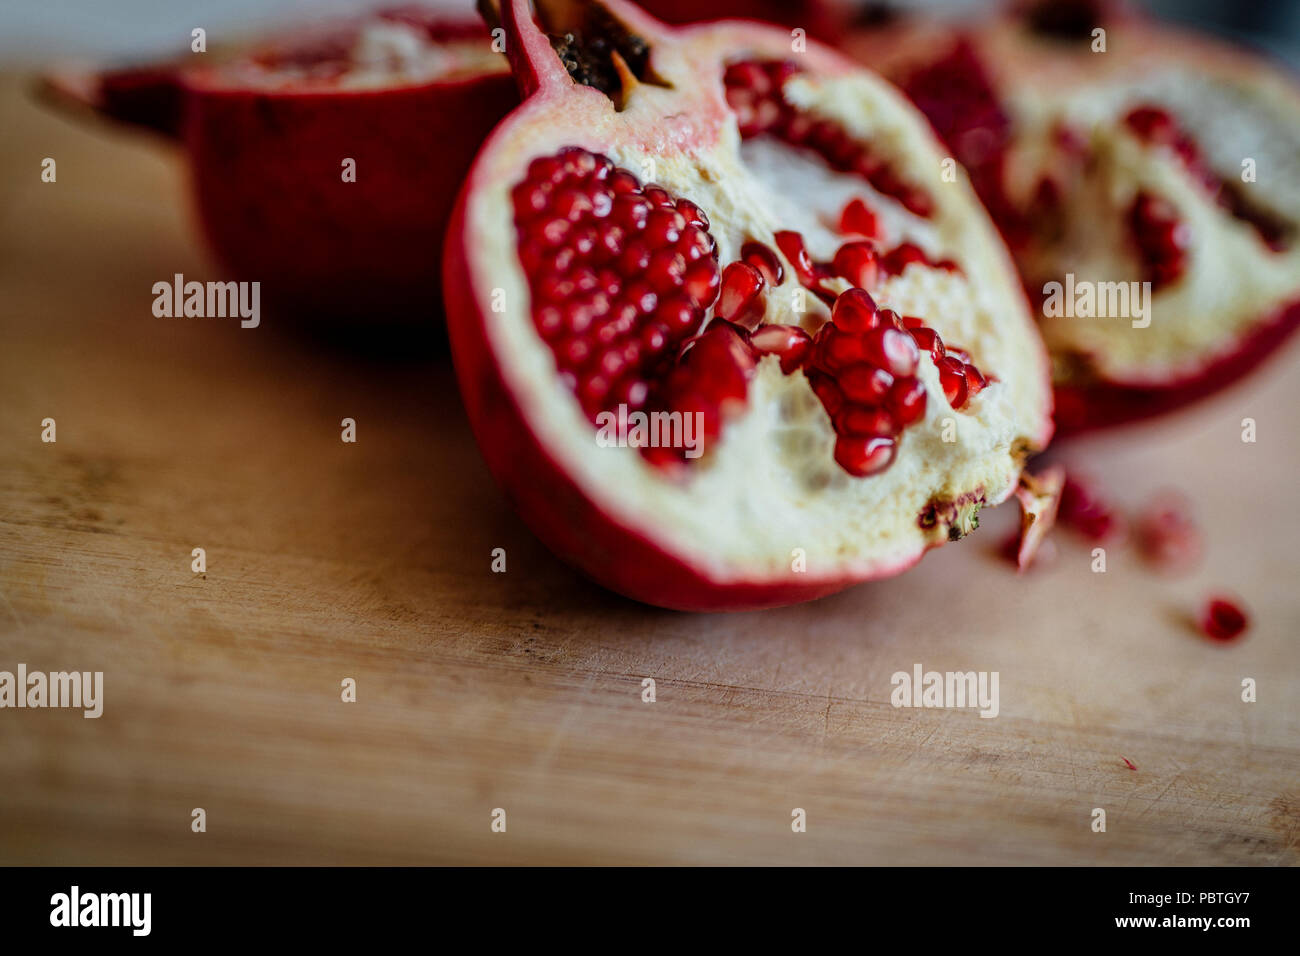 Fresh POMEGRANATE on wooden background. - Stock Image